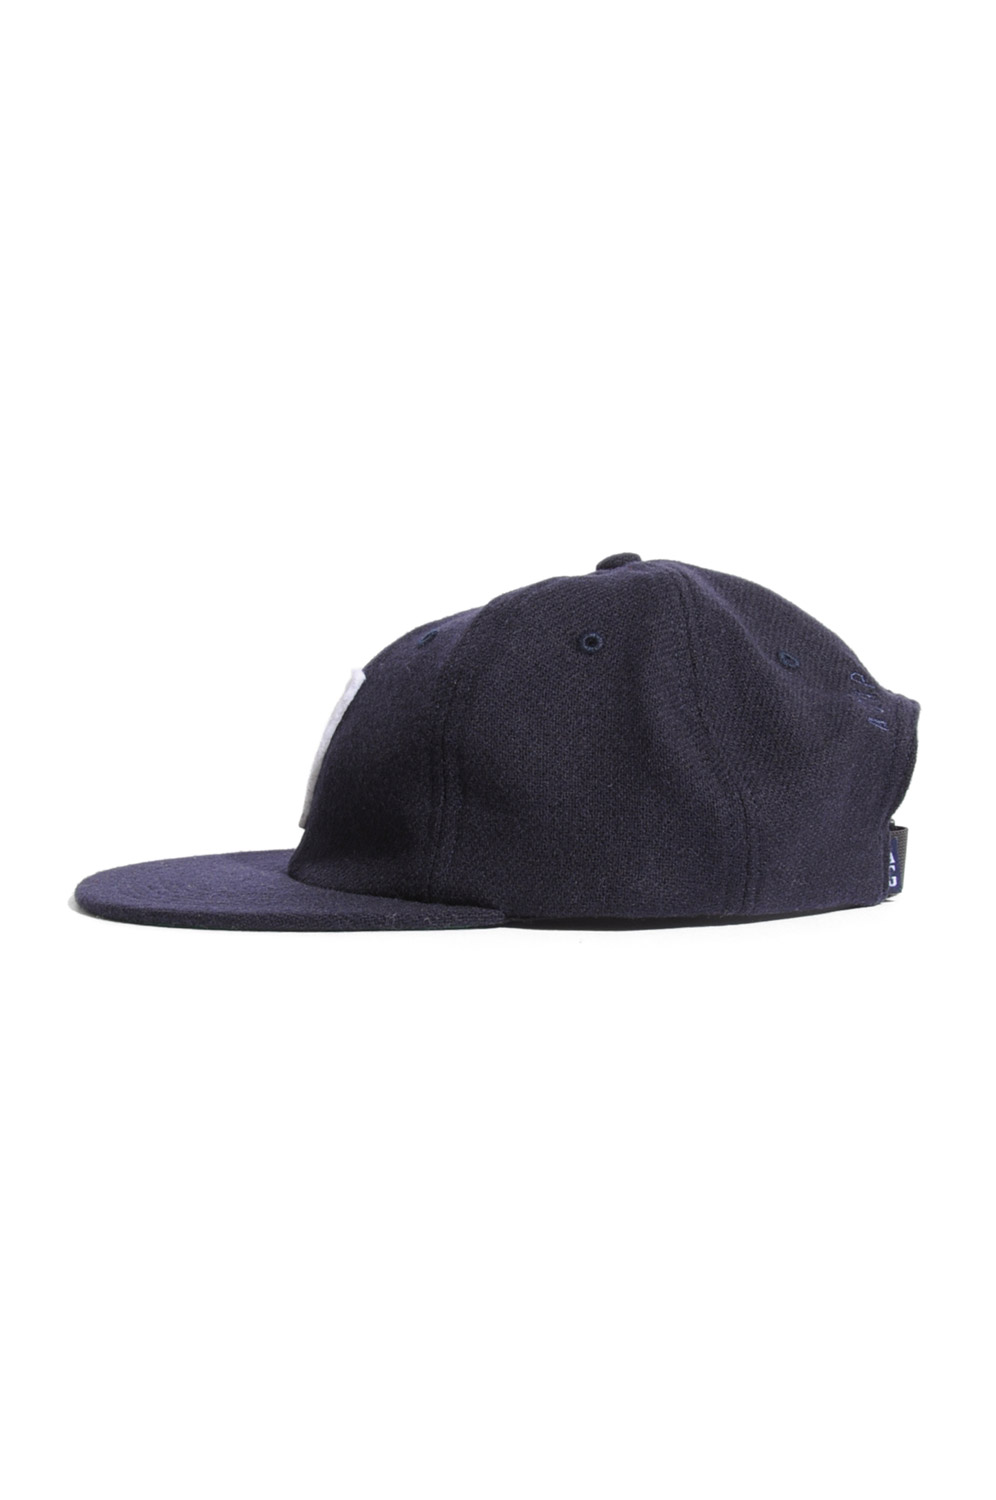 画像3: 【ACAPULCO GOLD】SEVEN 6-PANEL CAP